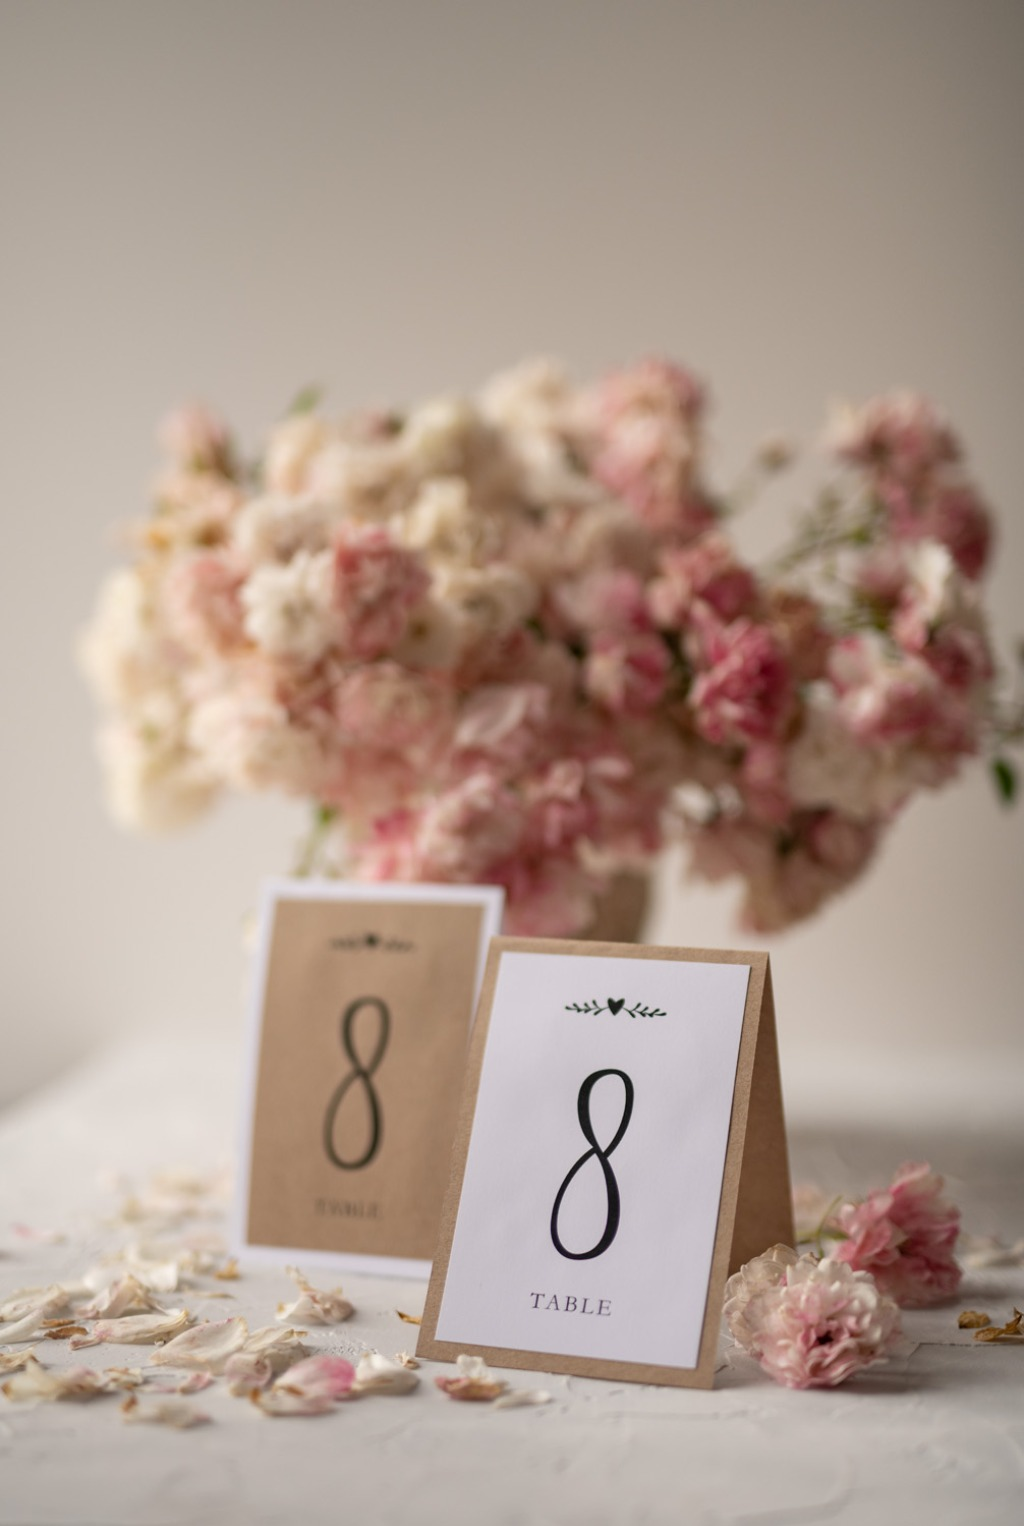 Rustic and eco table number